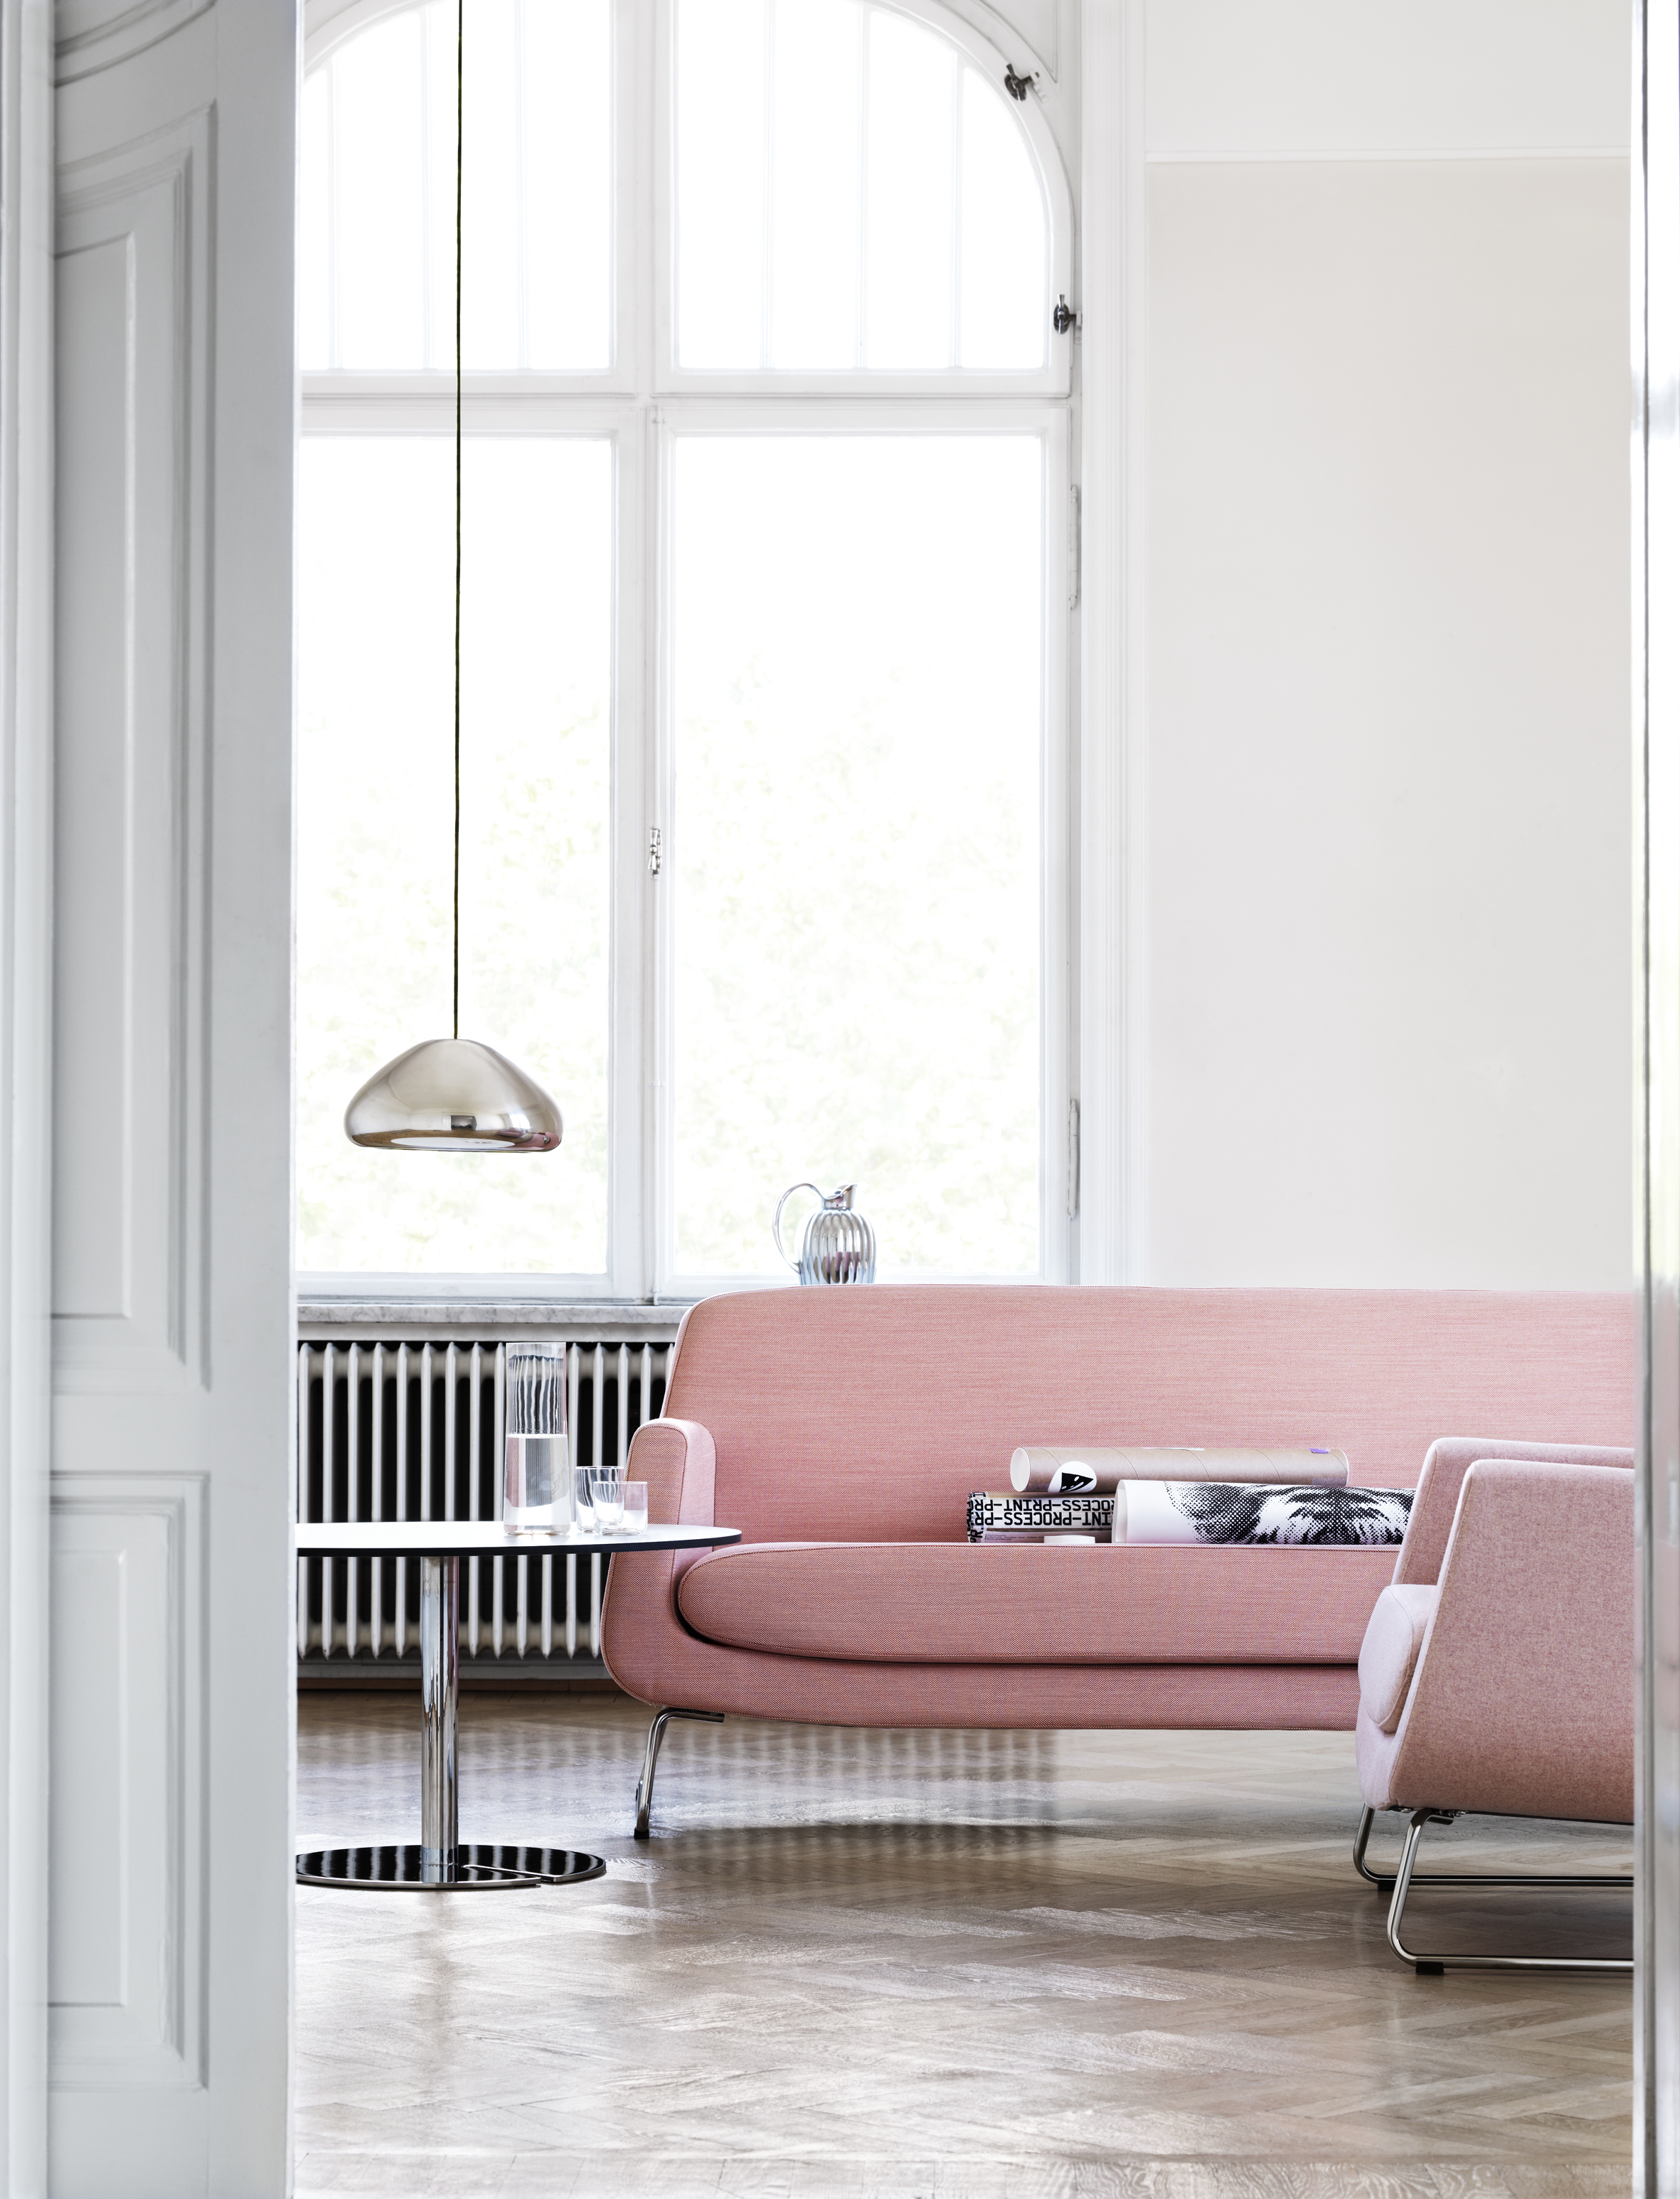 Mood Board Best Ways to Use Pale Pink in Your Home Decor 1  Mood Board: Best Ways to Use Pale Pink in Your Home Decor Mood Board Best Ways to Use Pale Pink in Your Home Decor 2